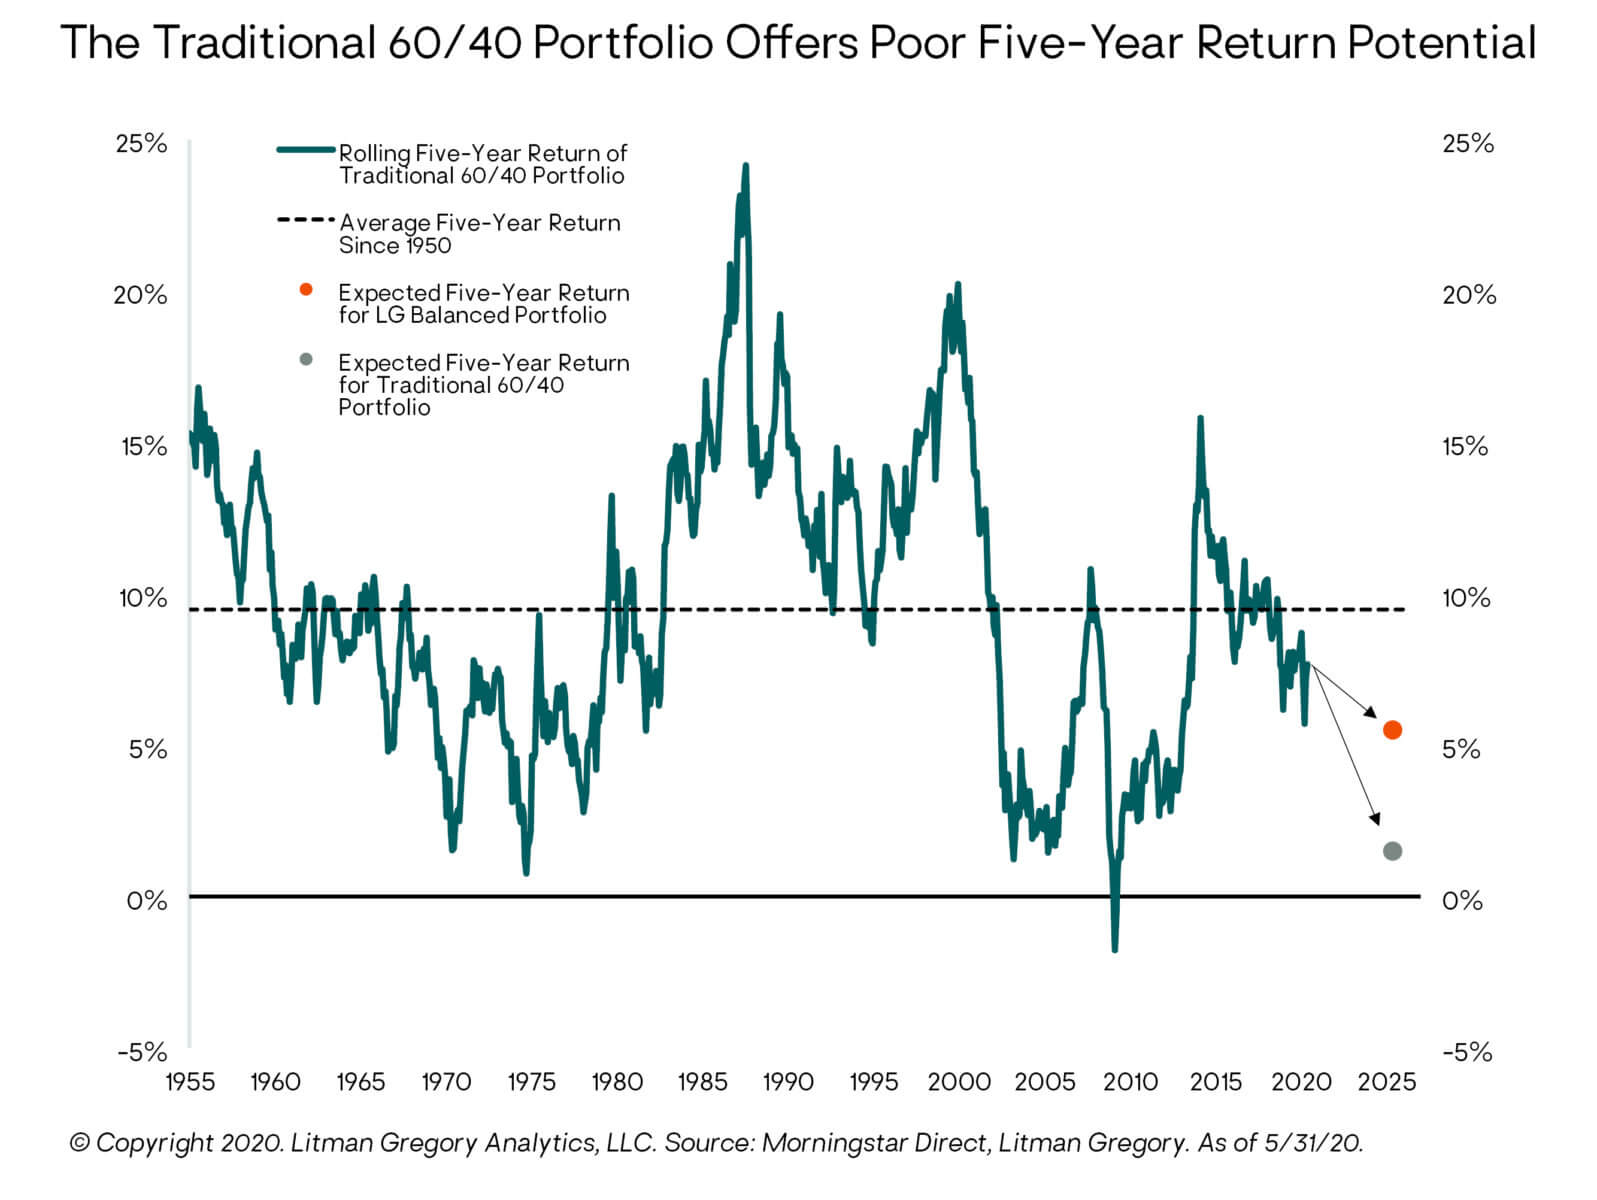 Traditional 60/40 Portfolio Offers Poor Five Year Return Potential